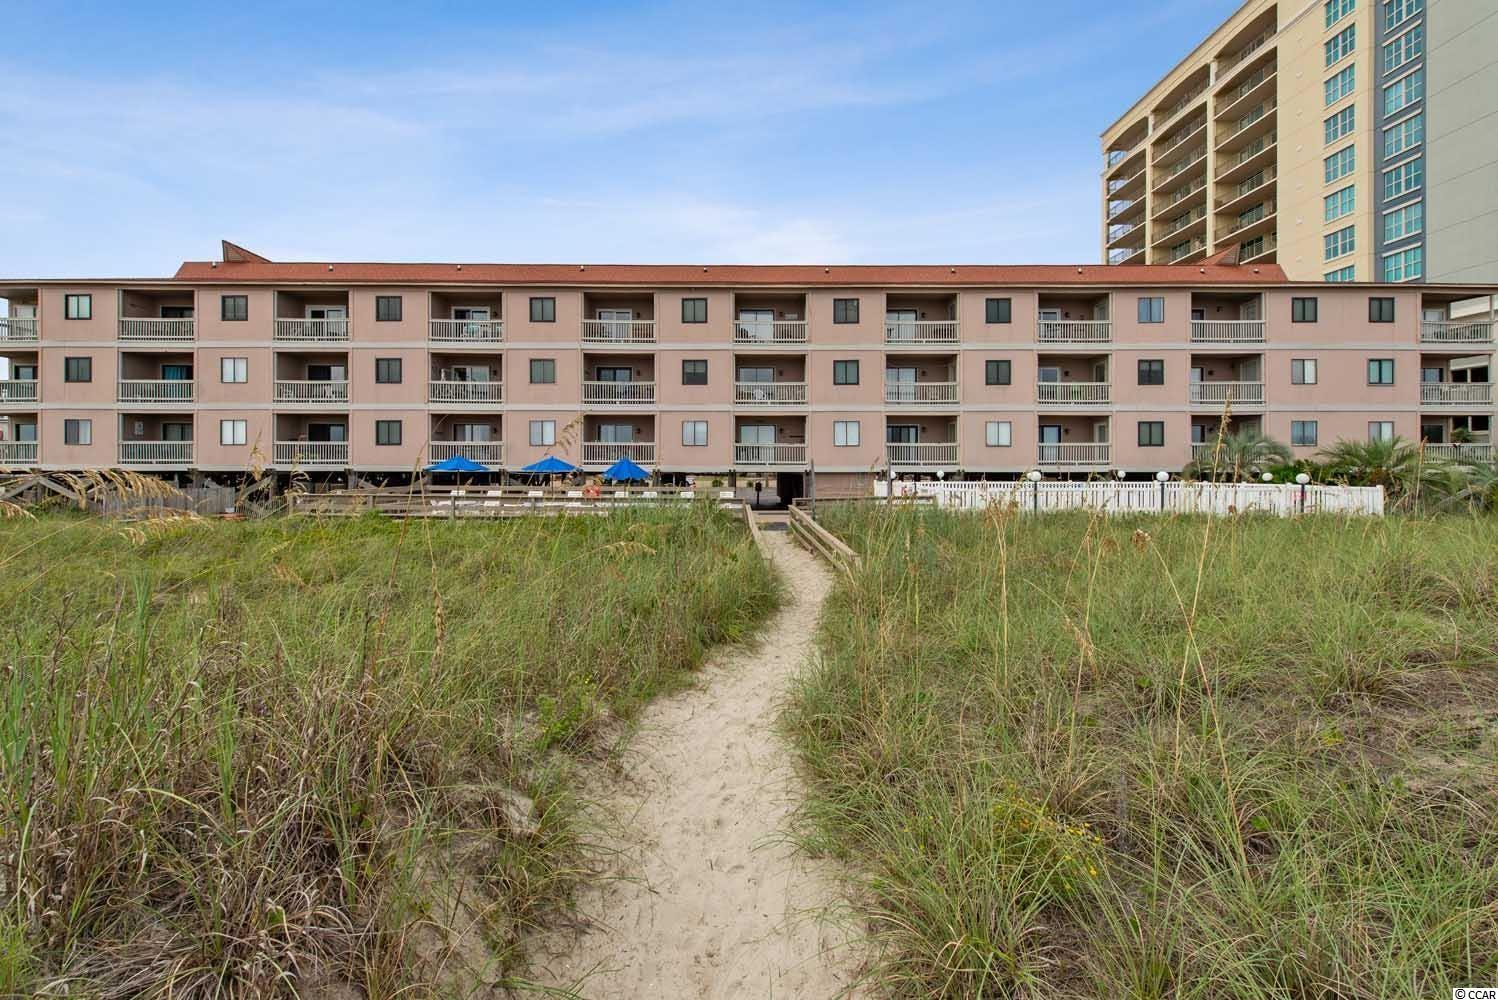 This quiet oceanfront resort in North Myrtle Beach features an oceanfront pool area and a grilling area. You'll love the breathtaking direct ocean views from your private balcony in this Ocean Drive section of the beach. Inside, includes all the conveniences of home, washer and dryer, central air only 2 years old, cable and internet. Outdoor amenities include a grill area, a spacious sun deck that spans the width of Chateau by the Sea, and a refreshing outdoor pool.  Location is just a few blocks south of Main Street, where there are many restaurants,  boutiques, beach stores, cafes and ice cream shops.  Short drive to Barefoot Landing, Broadway At the Beach, Shows, Dining, Shopping, and lots more.  Great primary residence, second home and/or beachfront rental.